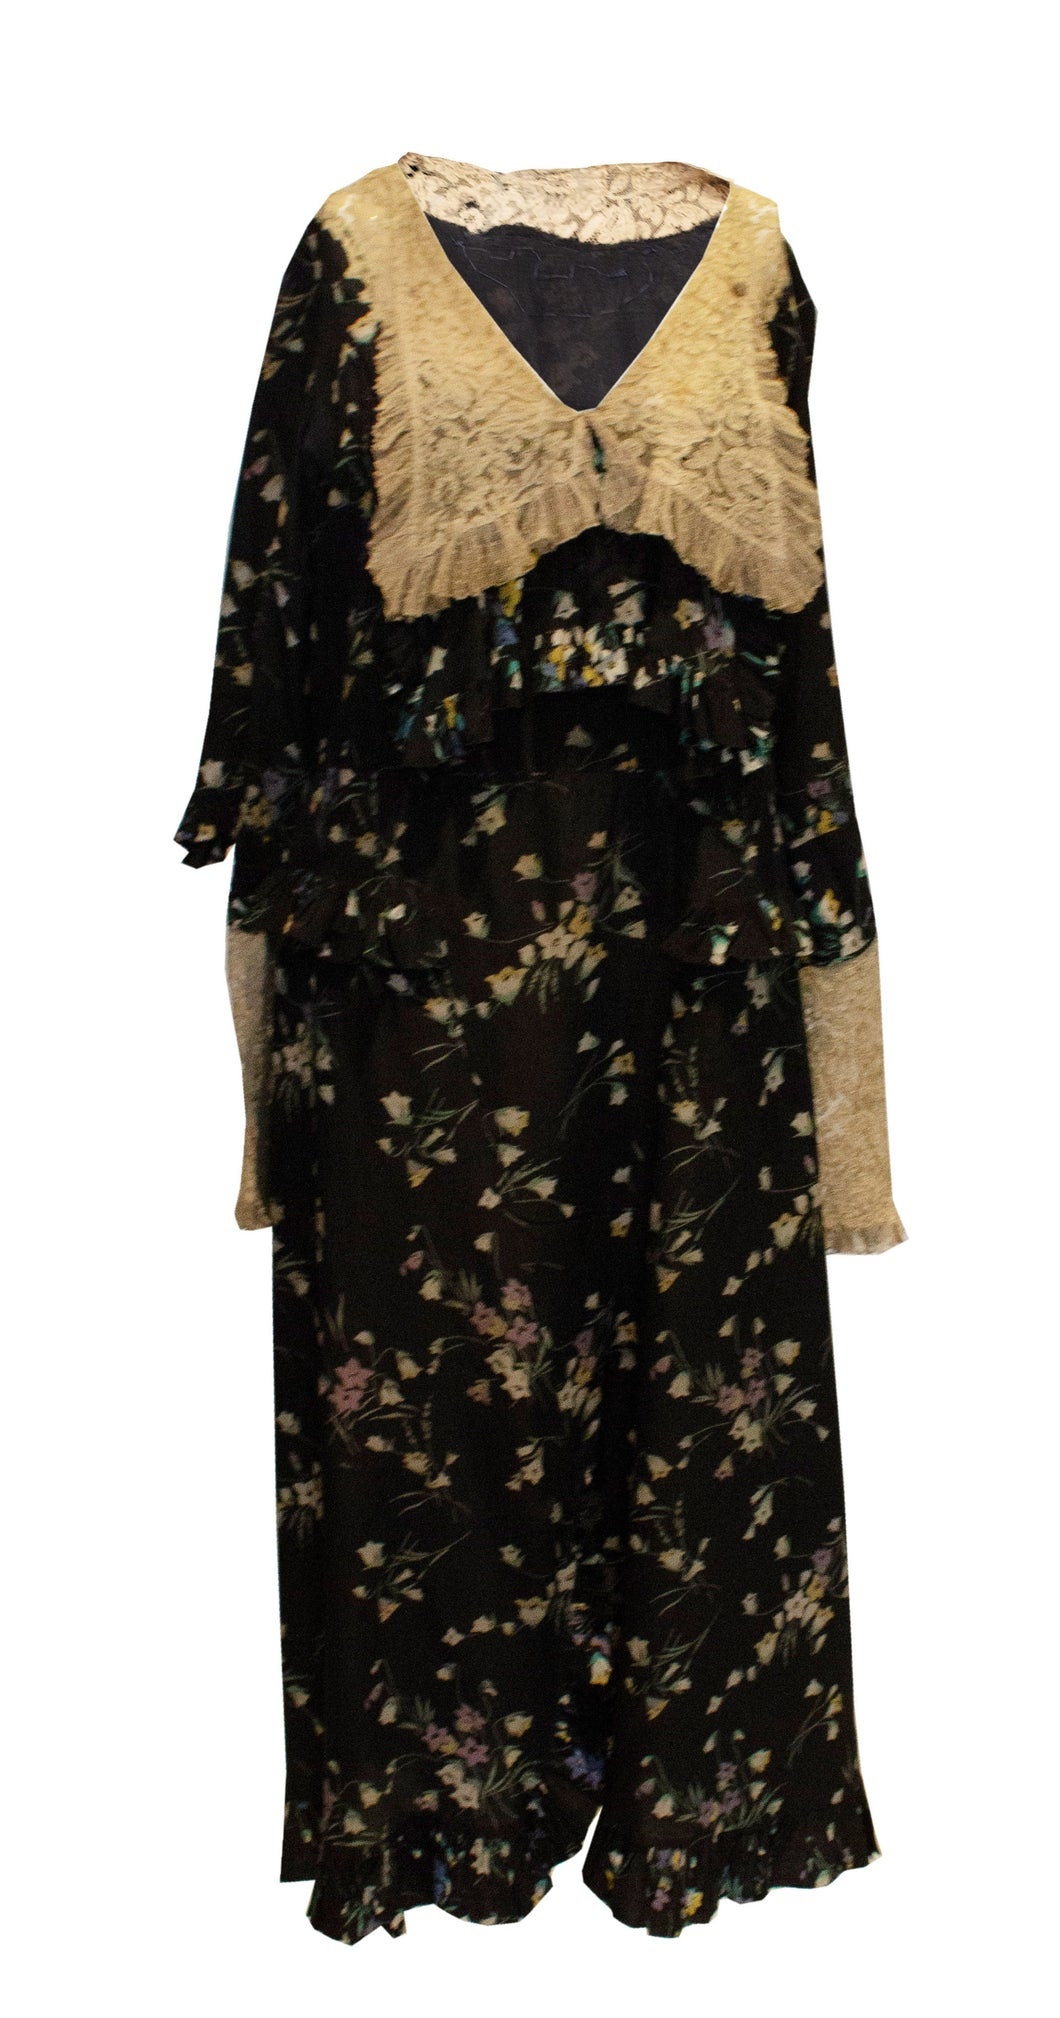 A Vintage 1920s floral print Silk and Lace large collar Dress